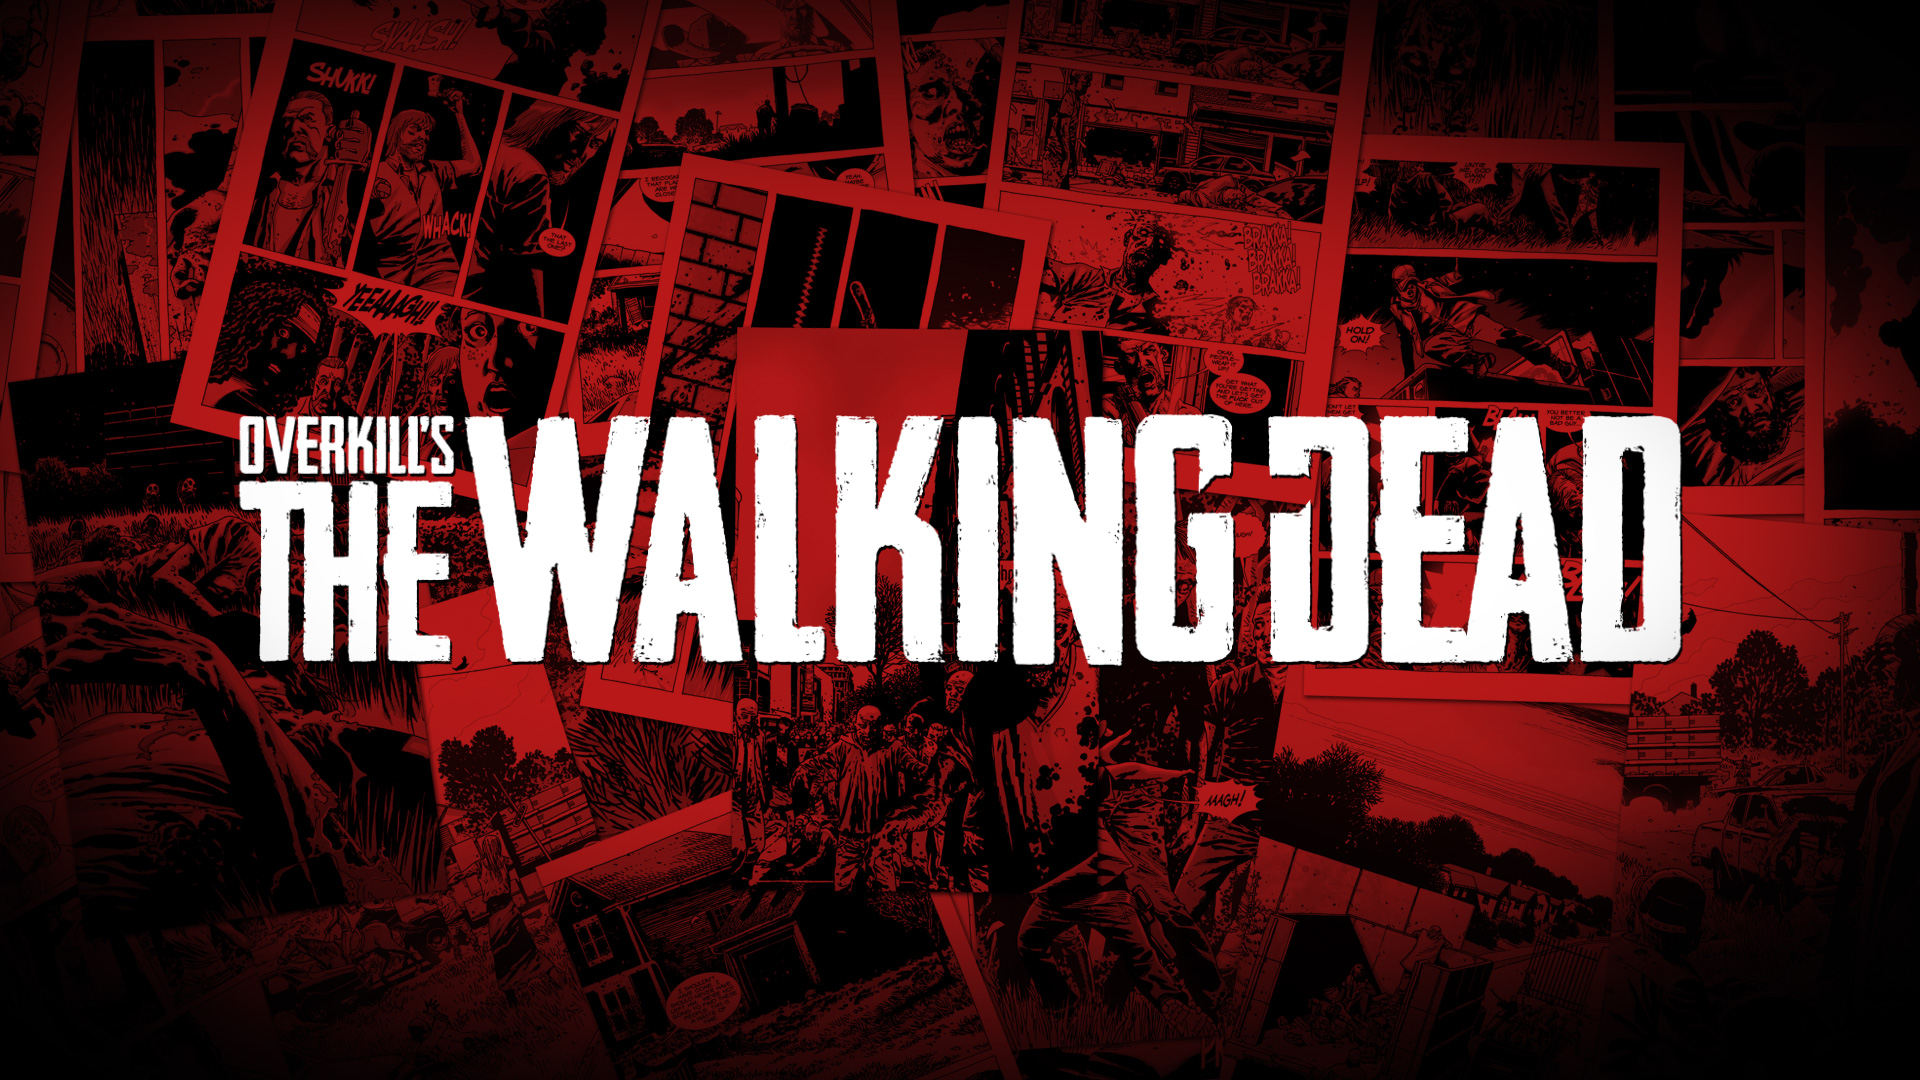 OVERKILL's The Walking Dead 日本語攻略 Wiki